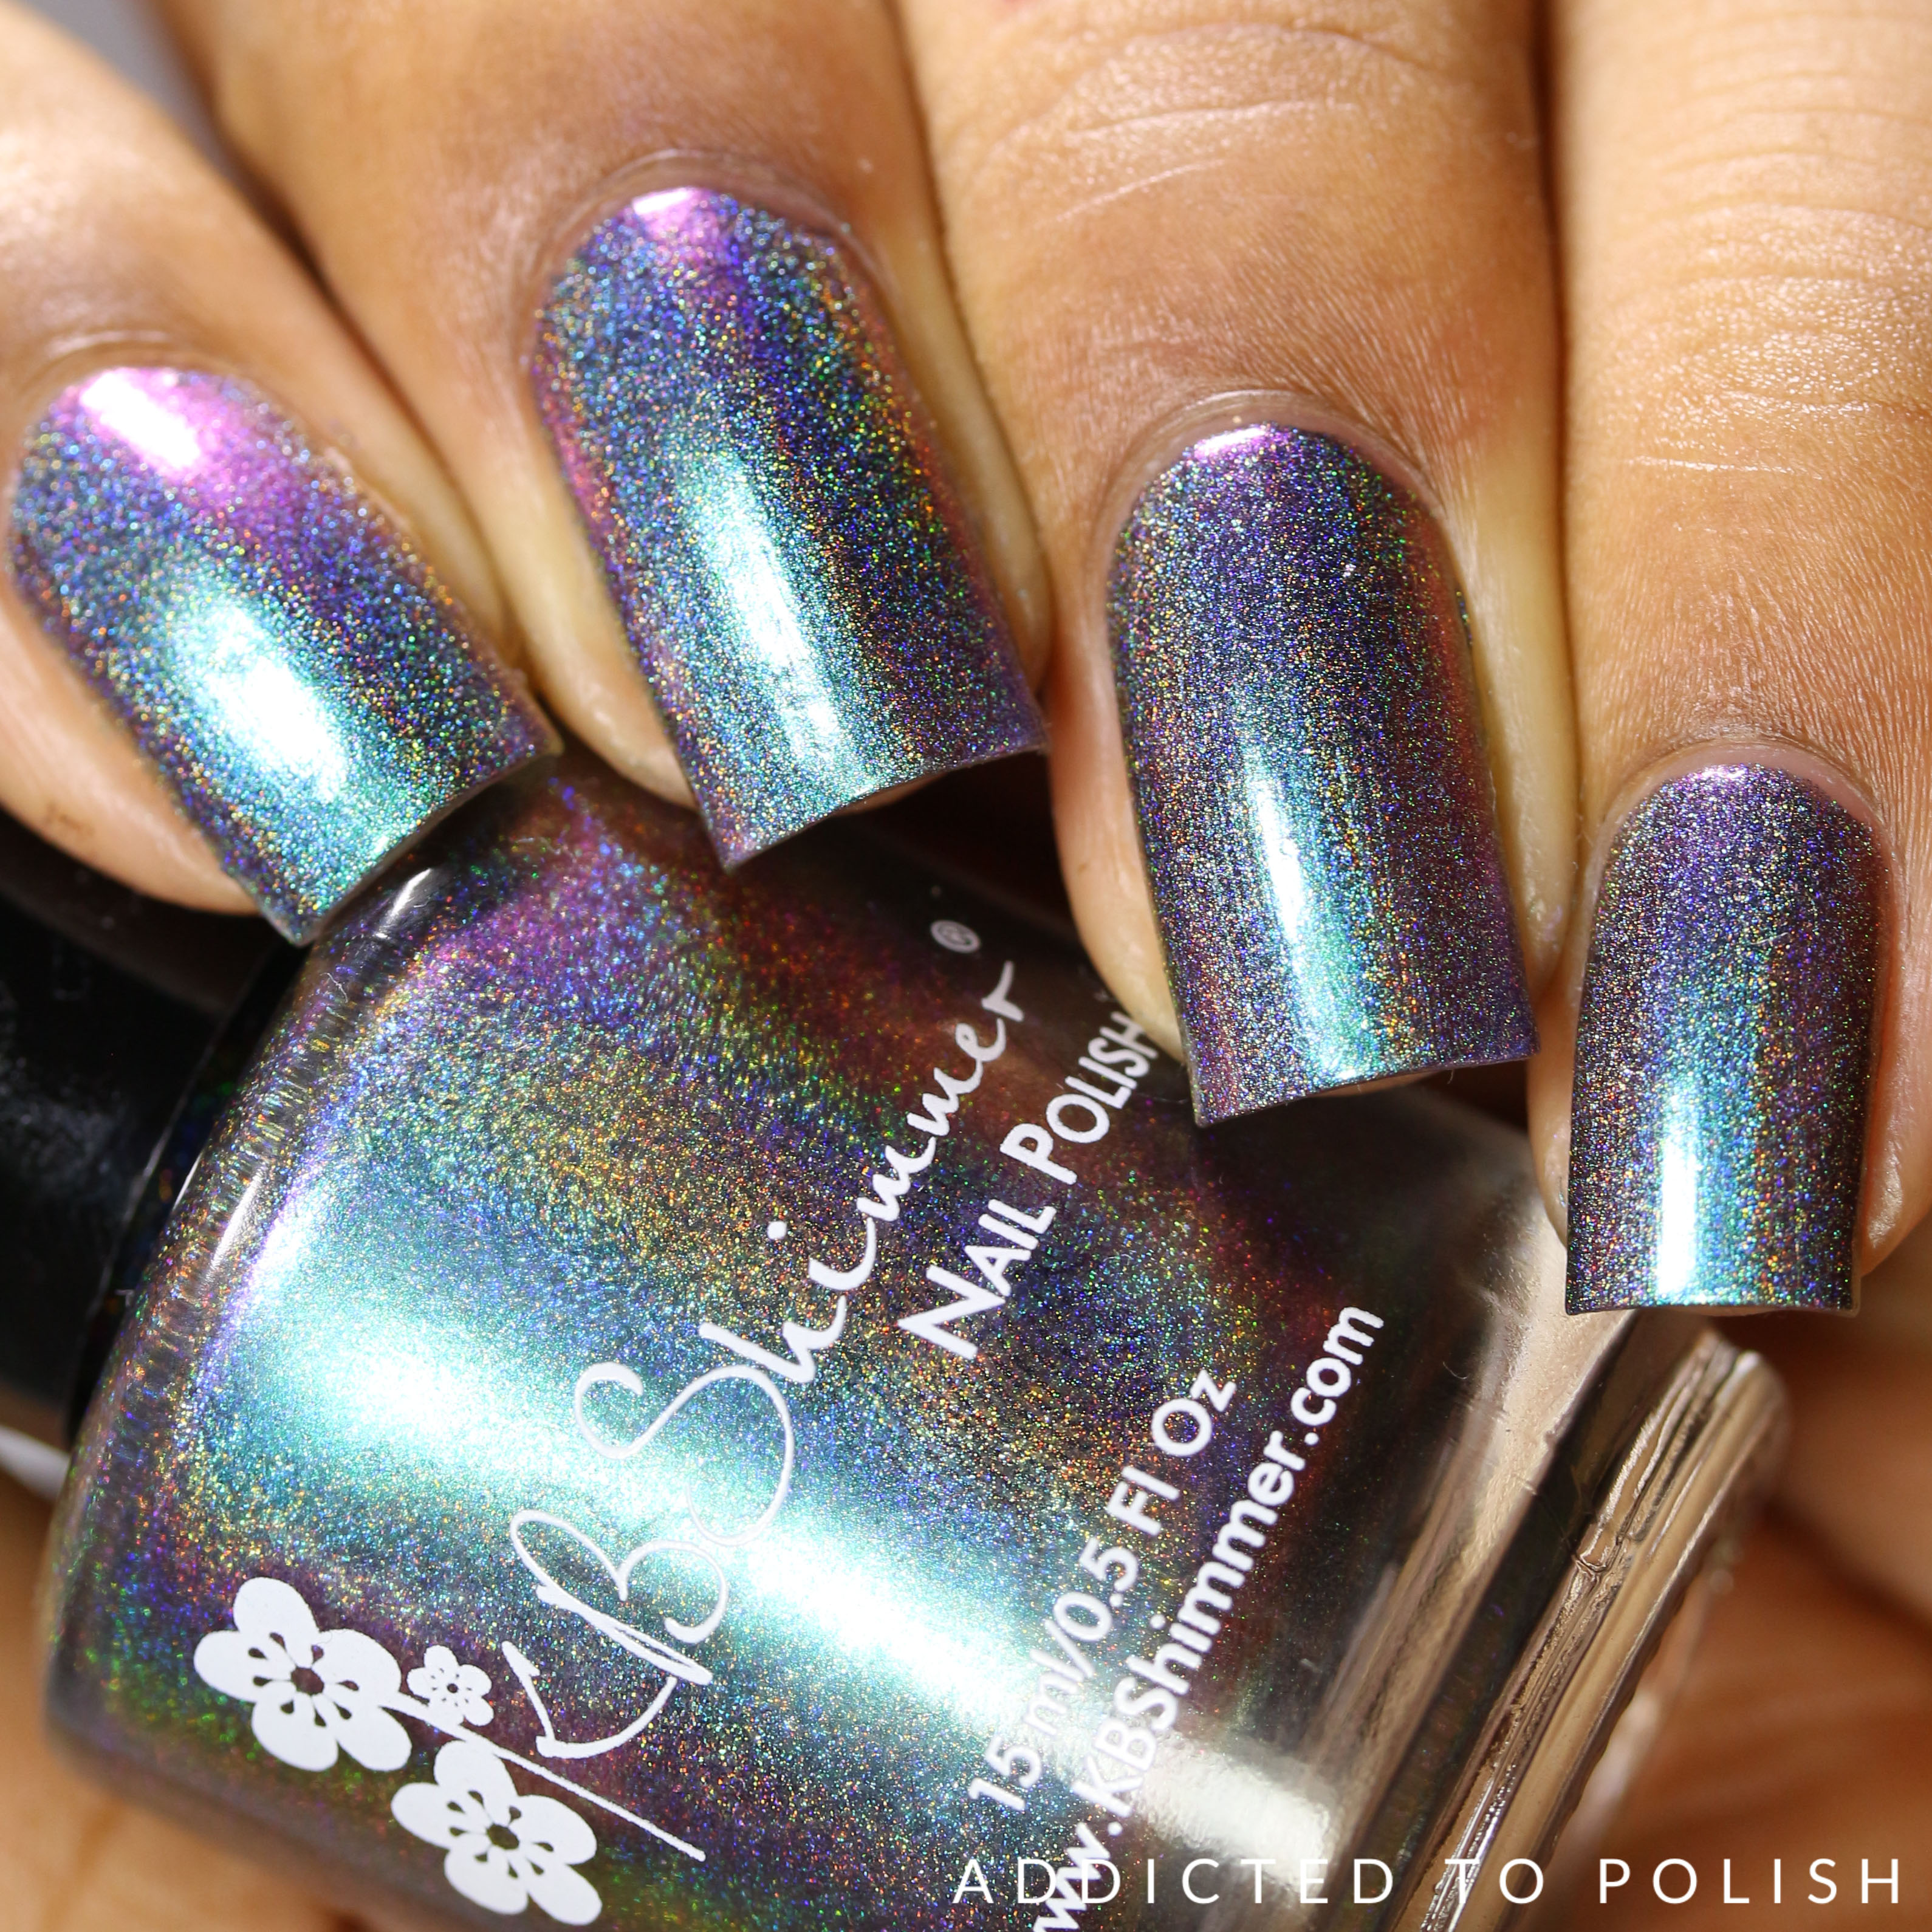 kbshimmer-none-of-your-bismuth-2